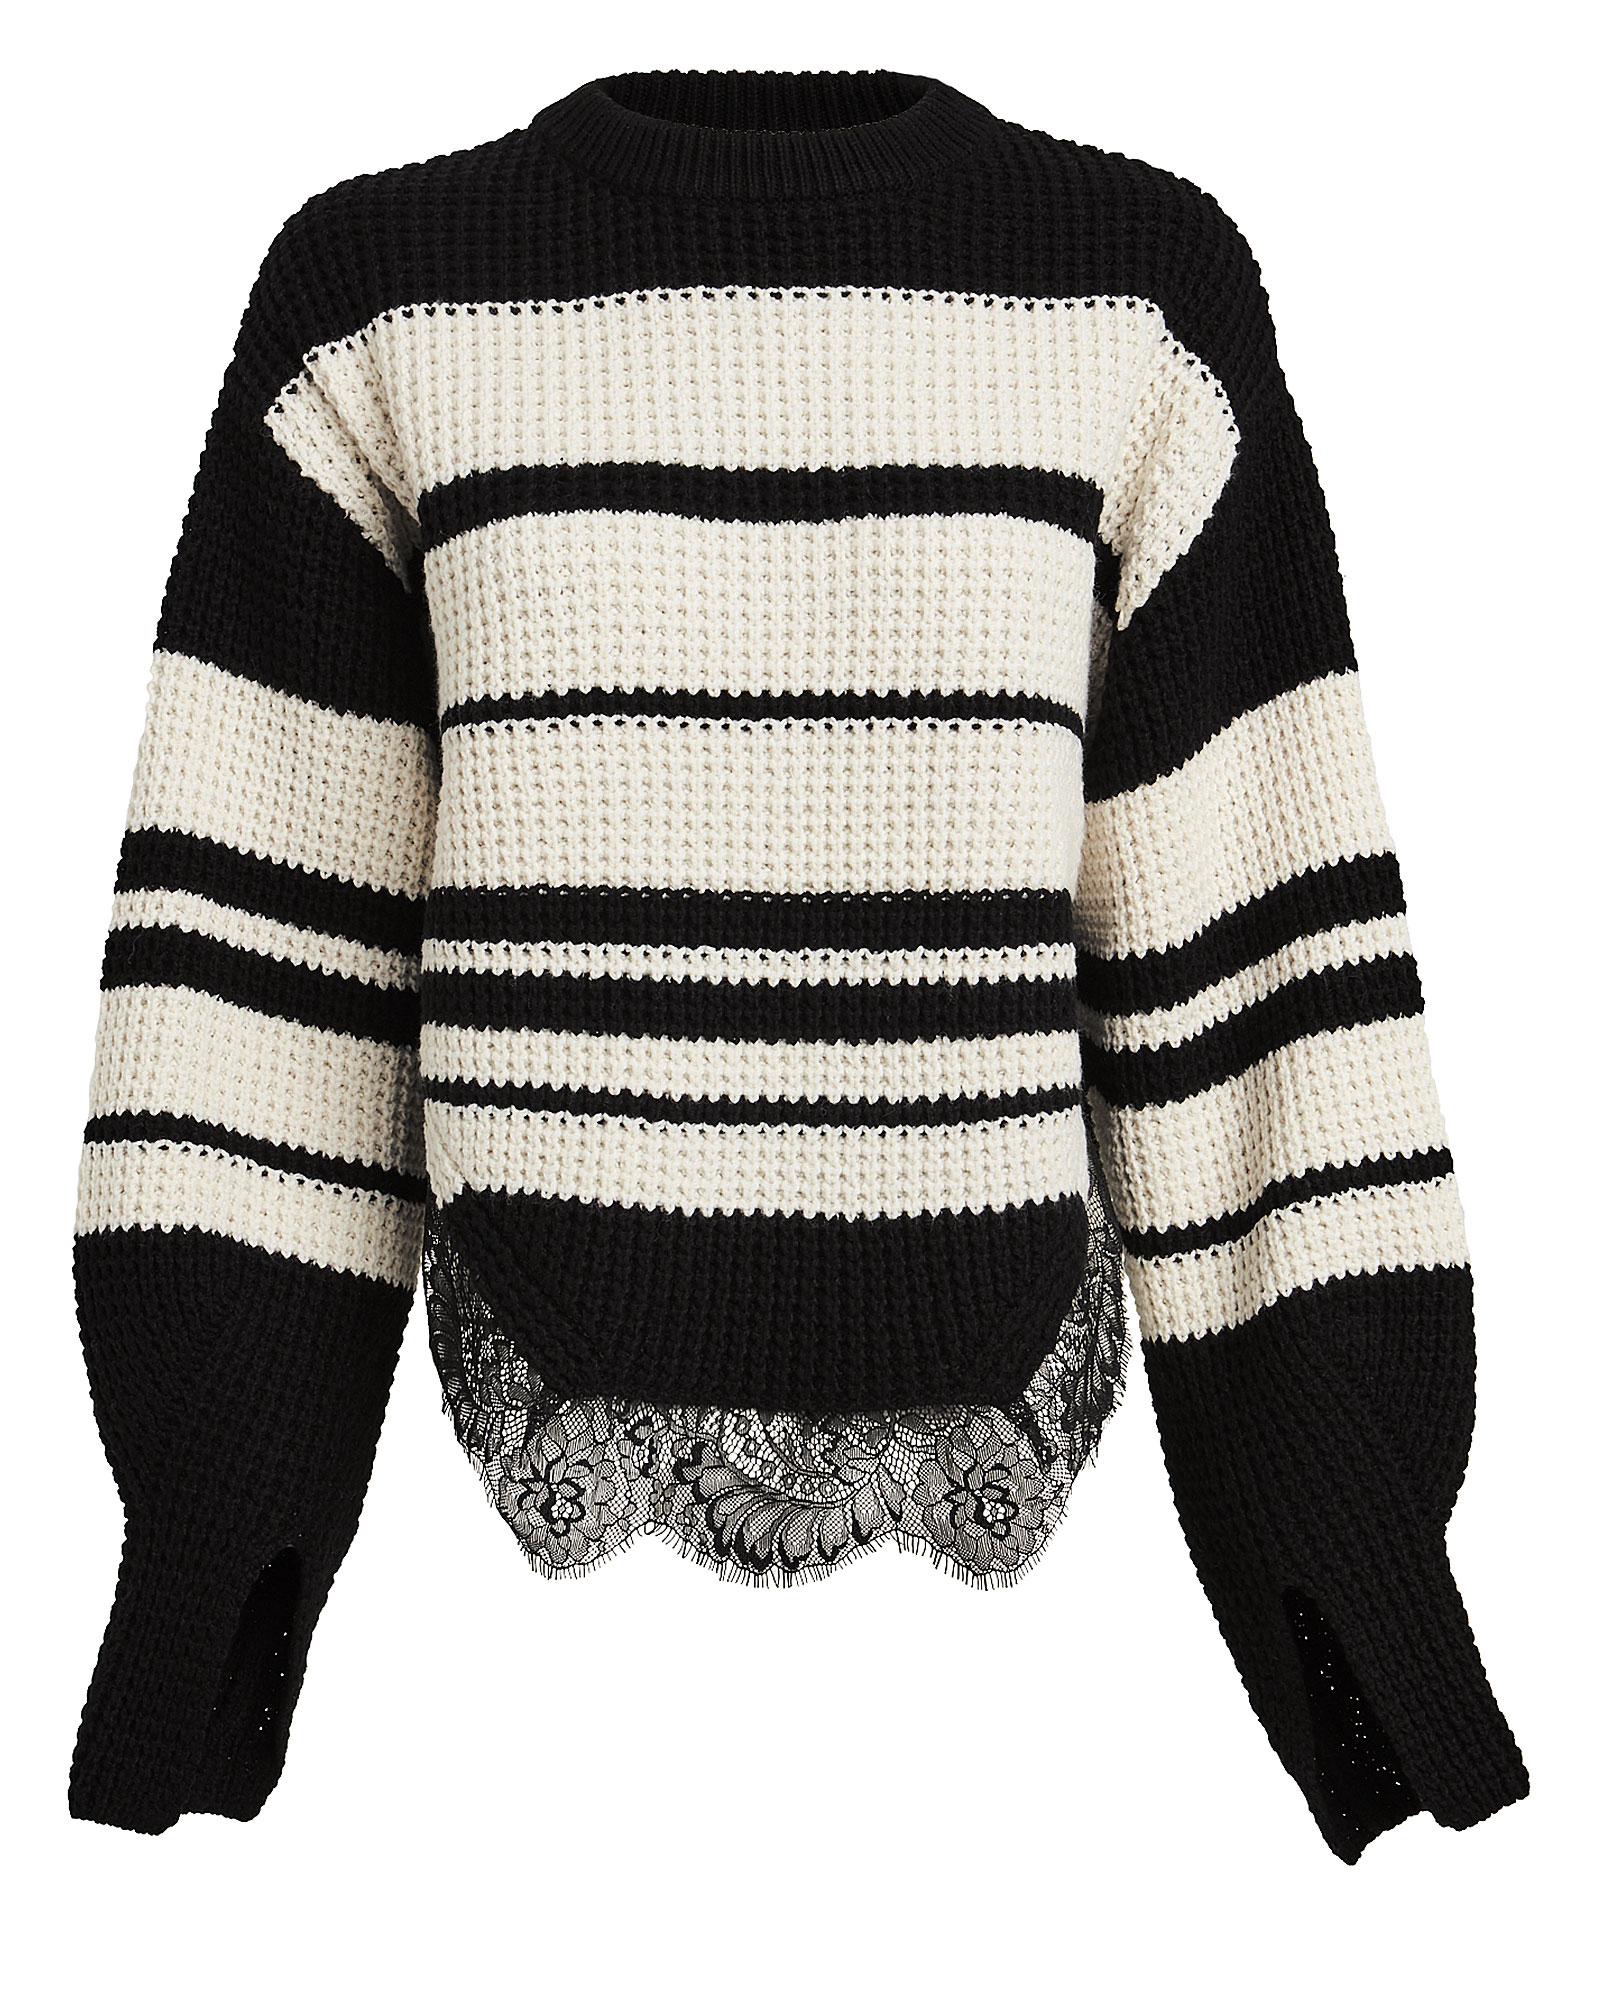 Striped Lace Trimmed Sweater by Self Portrait